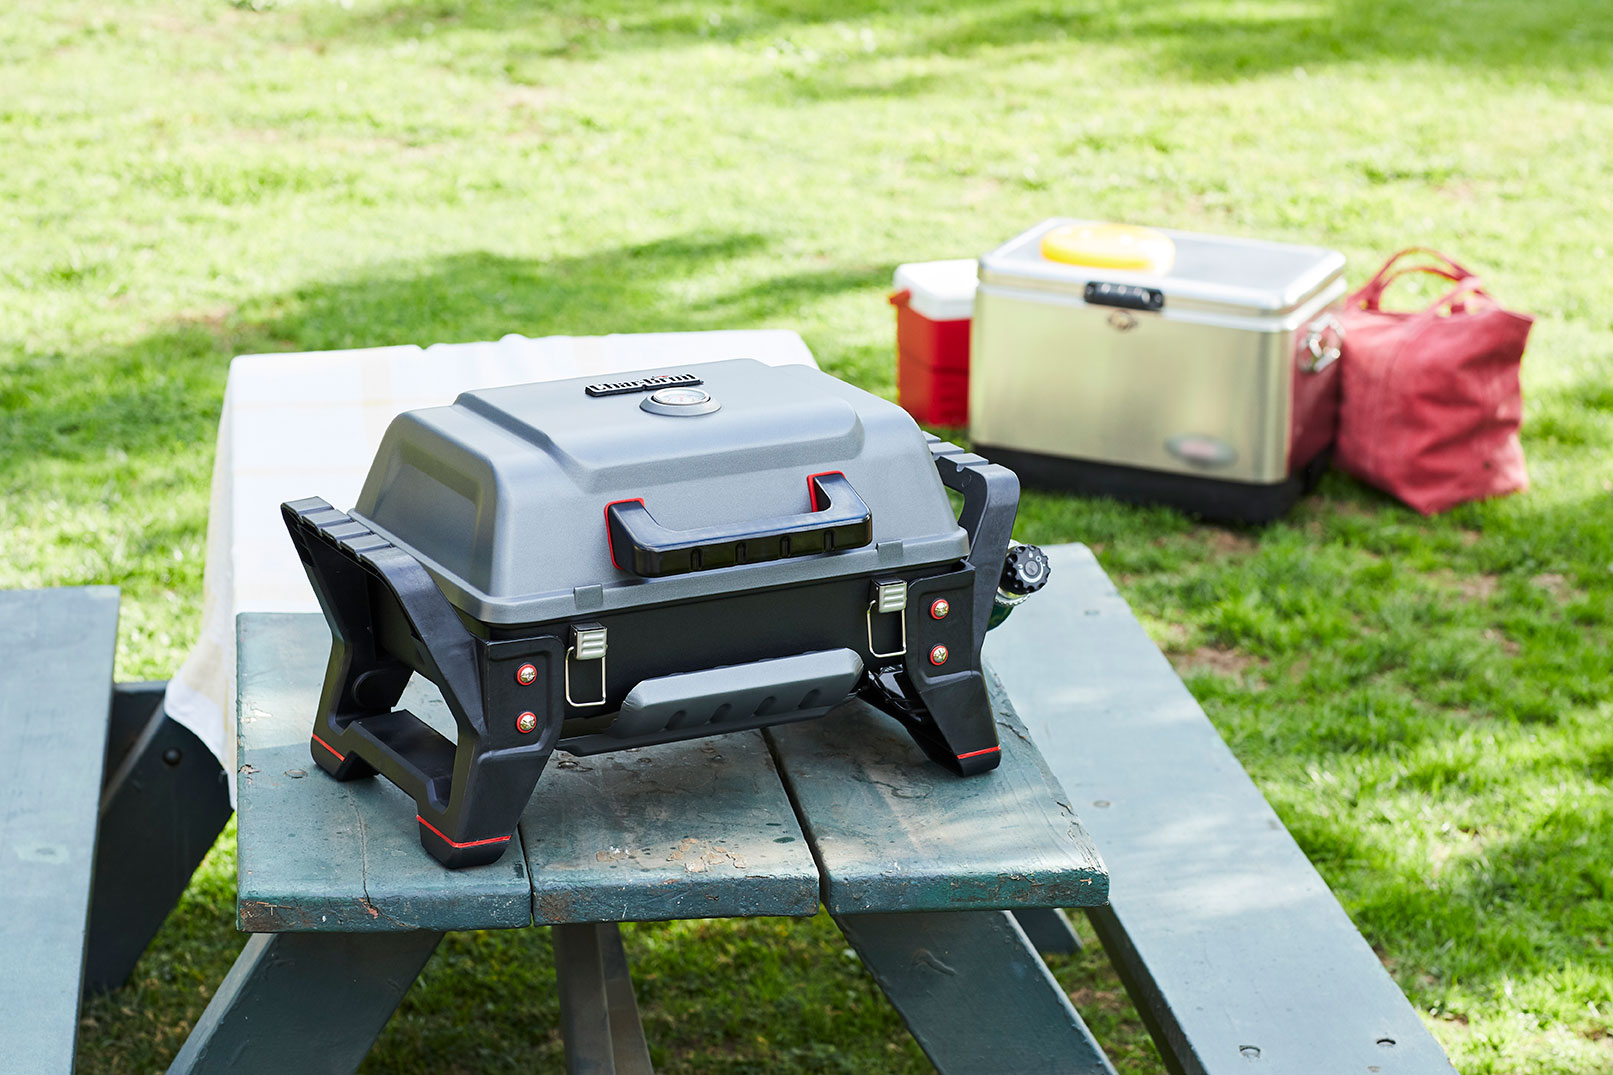 Broil Gasgrill Char Broil Grill2go X200 The Perfectly Portable Gas Grill For Car